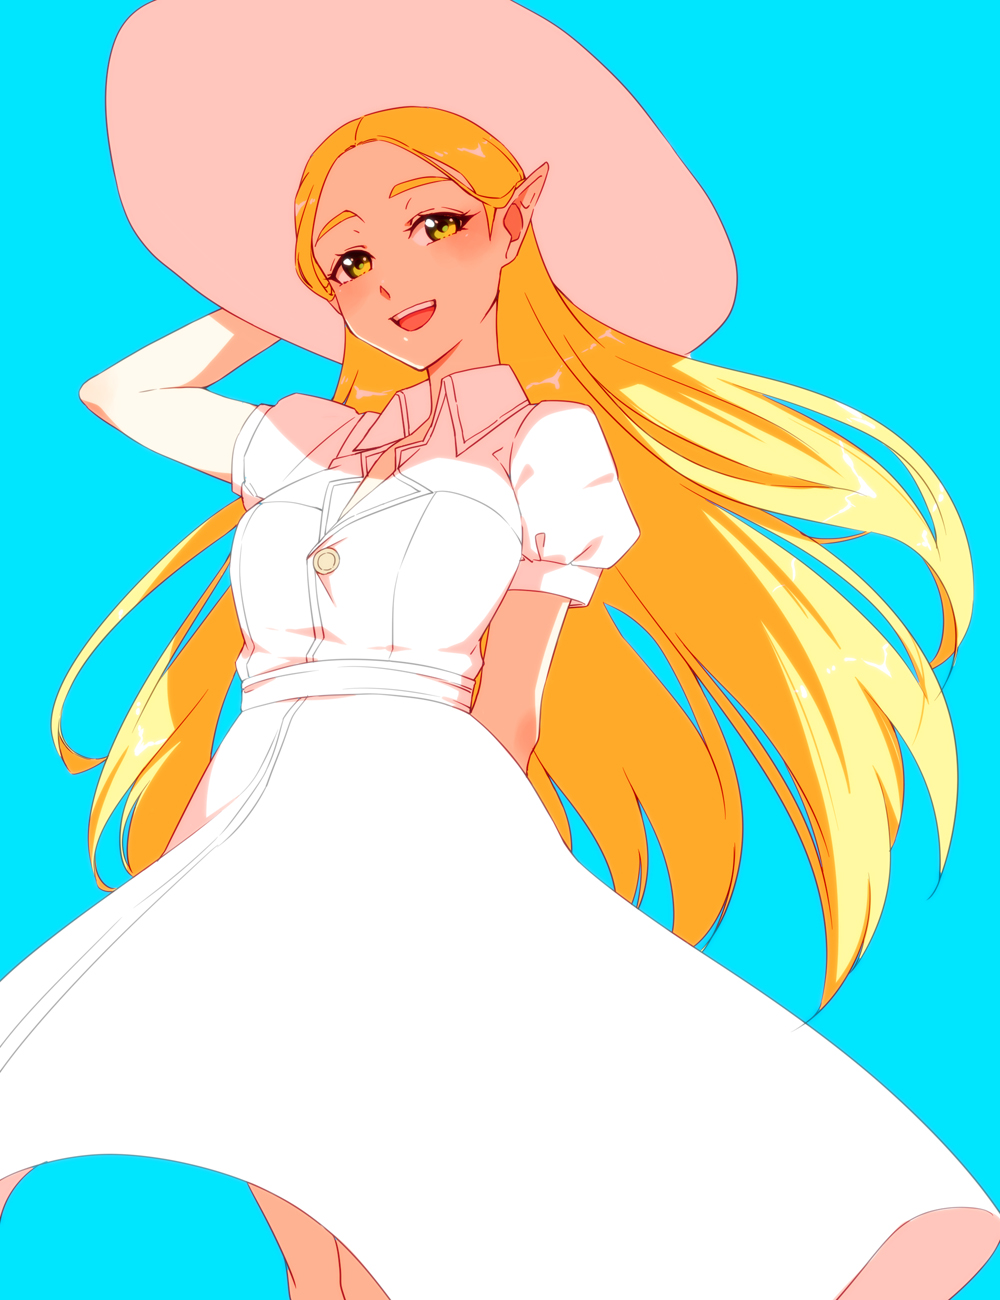 1girl :d arm_behind_back arm_up bangs blonde_hair blue_background blush breasts collared_dress dress feet_out_of_frame green_eyes hand_on_headwear hat highres long_hair looking_at_viewer medium_breasts open_mouth parted_bangs pointy_ears princess_zelda saiba_(henrietta) short_sleeves simple_background smile solo standing straight_hair sun_hat the_legend_of_zelda the_legend_of_zelda:_breath_of_the_wild upper_teeth very_long_hair white_dress white_headwear